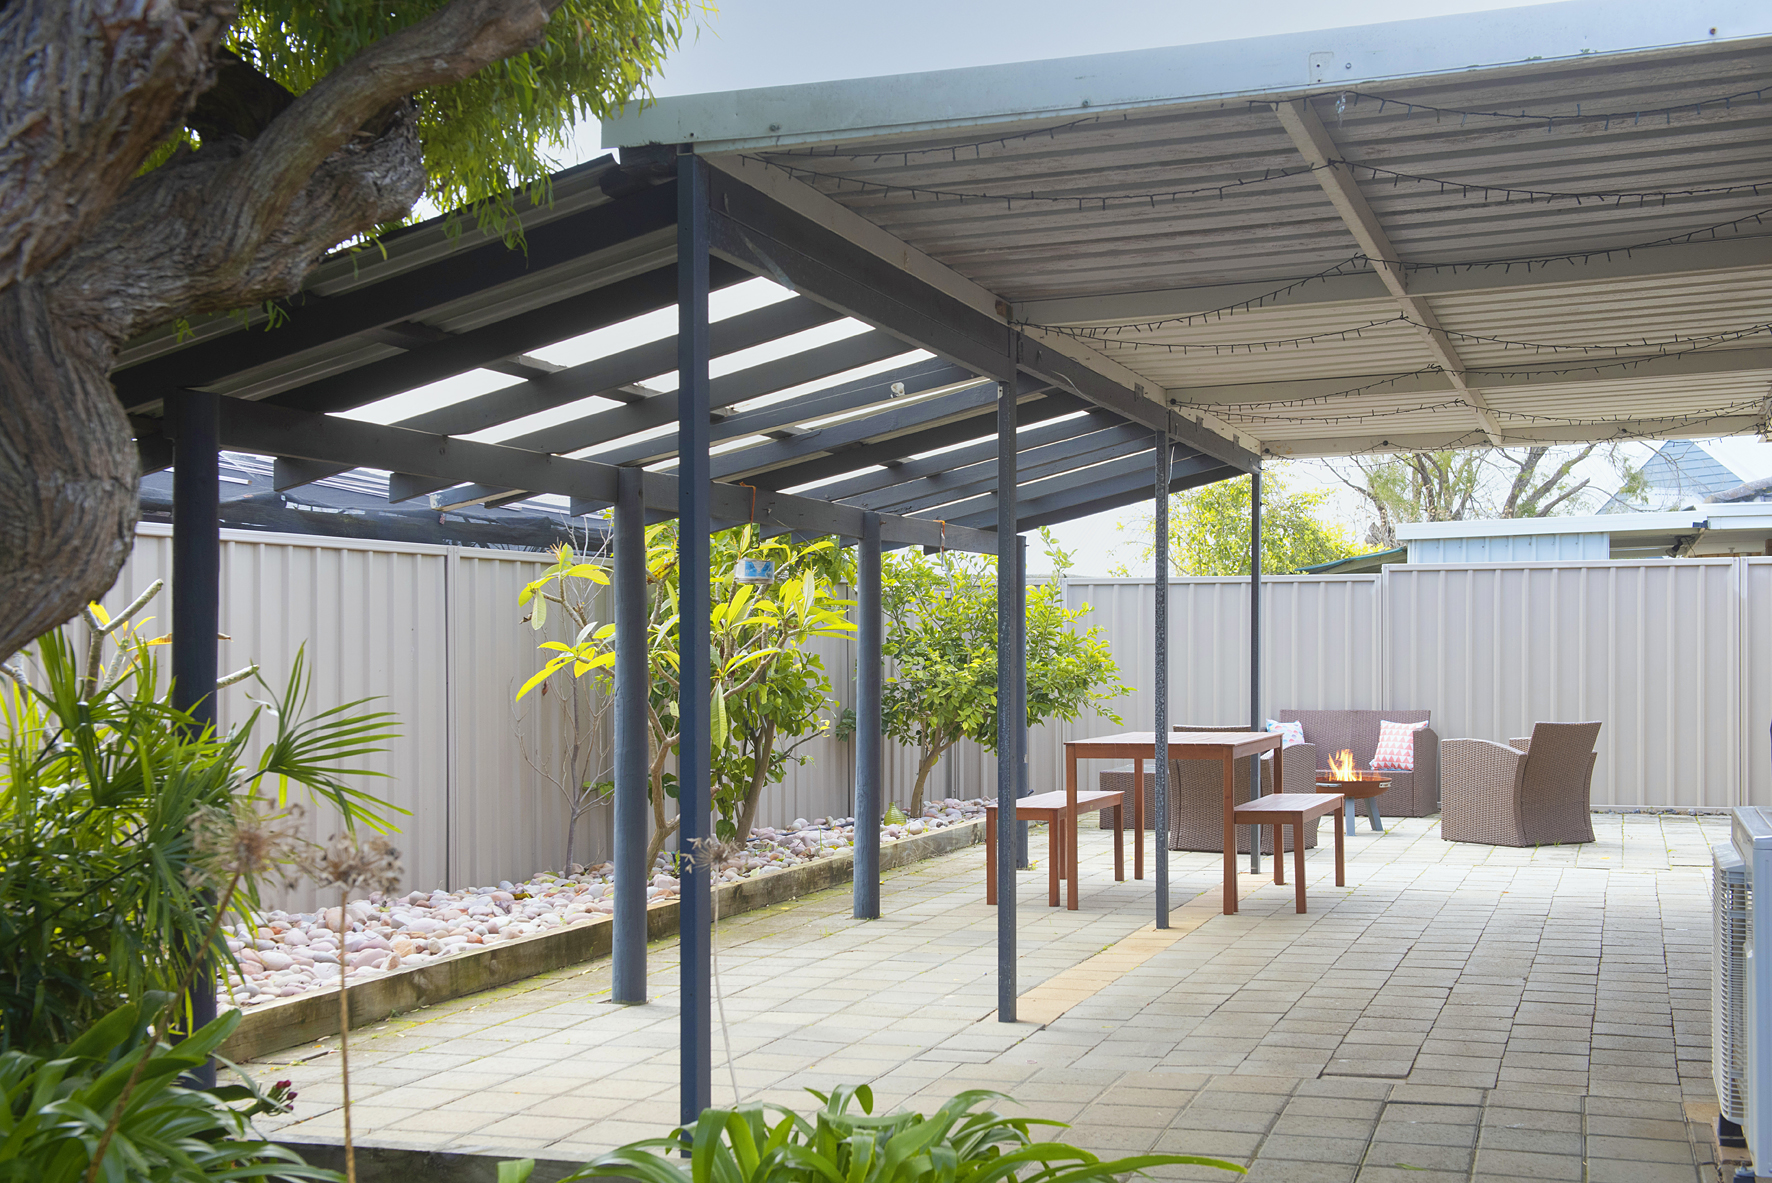 5A Cummins Court Geographe - House For Sale - 23230896 - ACTON South West